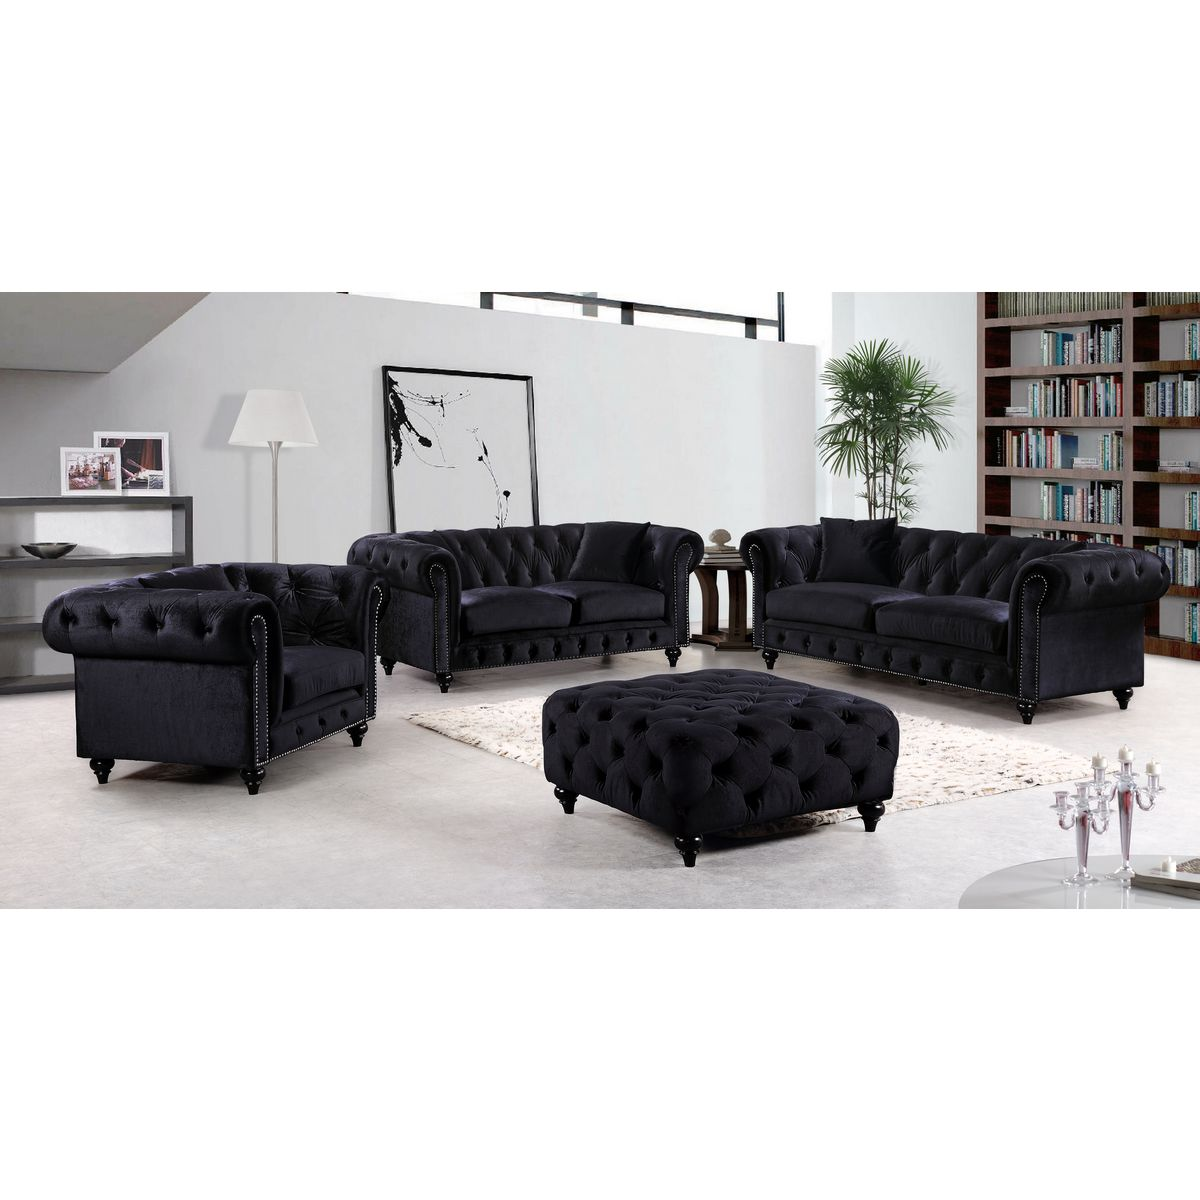 Chesterfield Tufted Black Velvet Loveseat w/ Silver Nailhead Detail by  Meridian Furniture